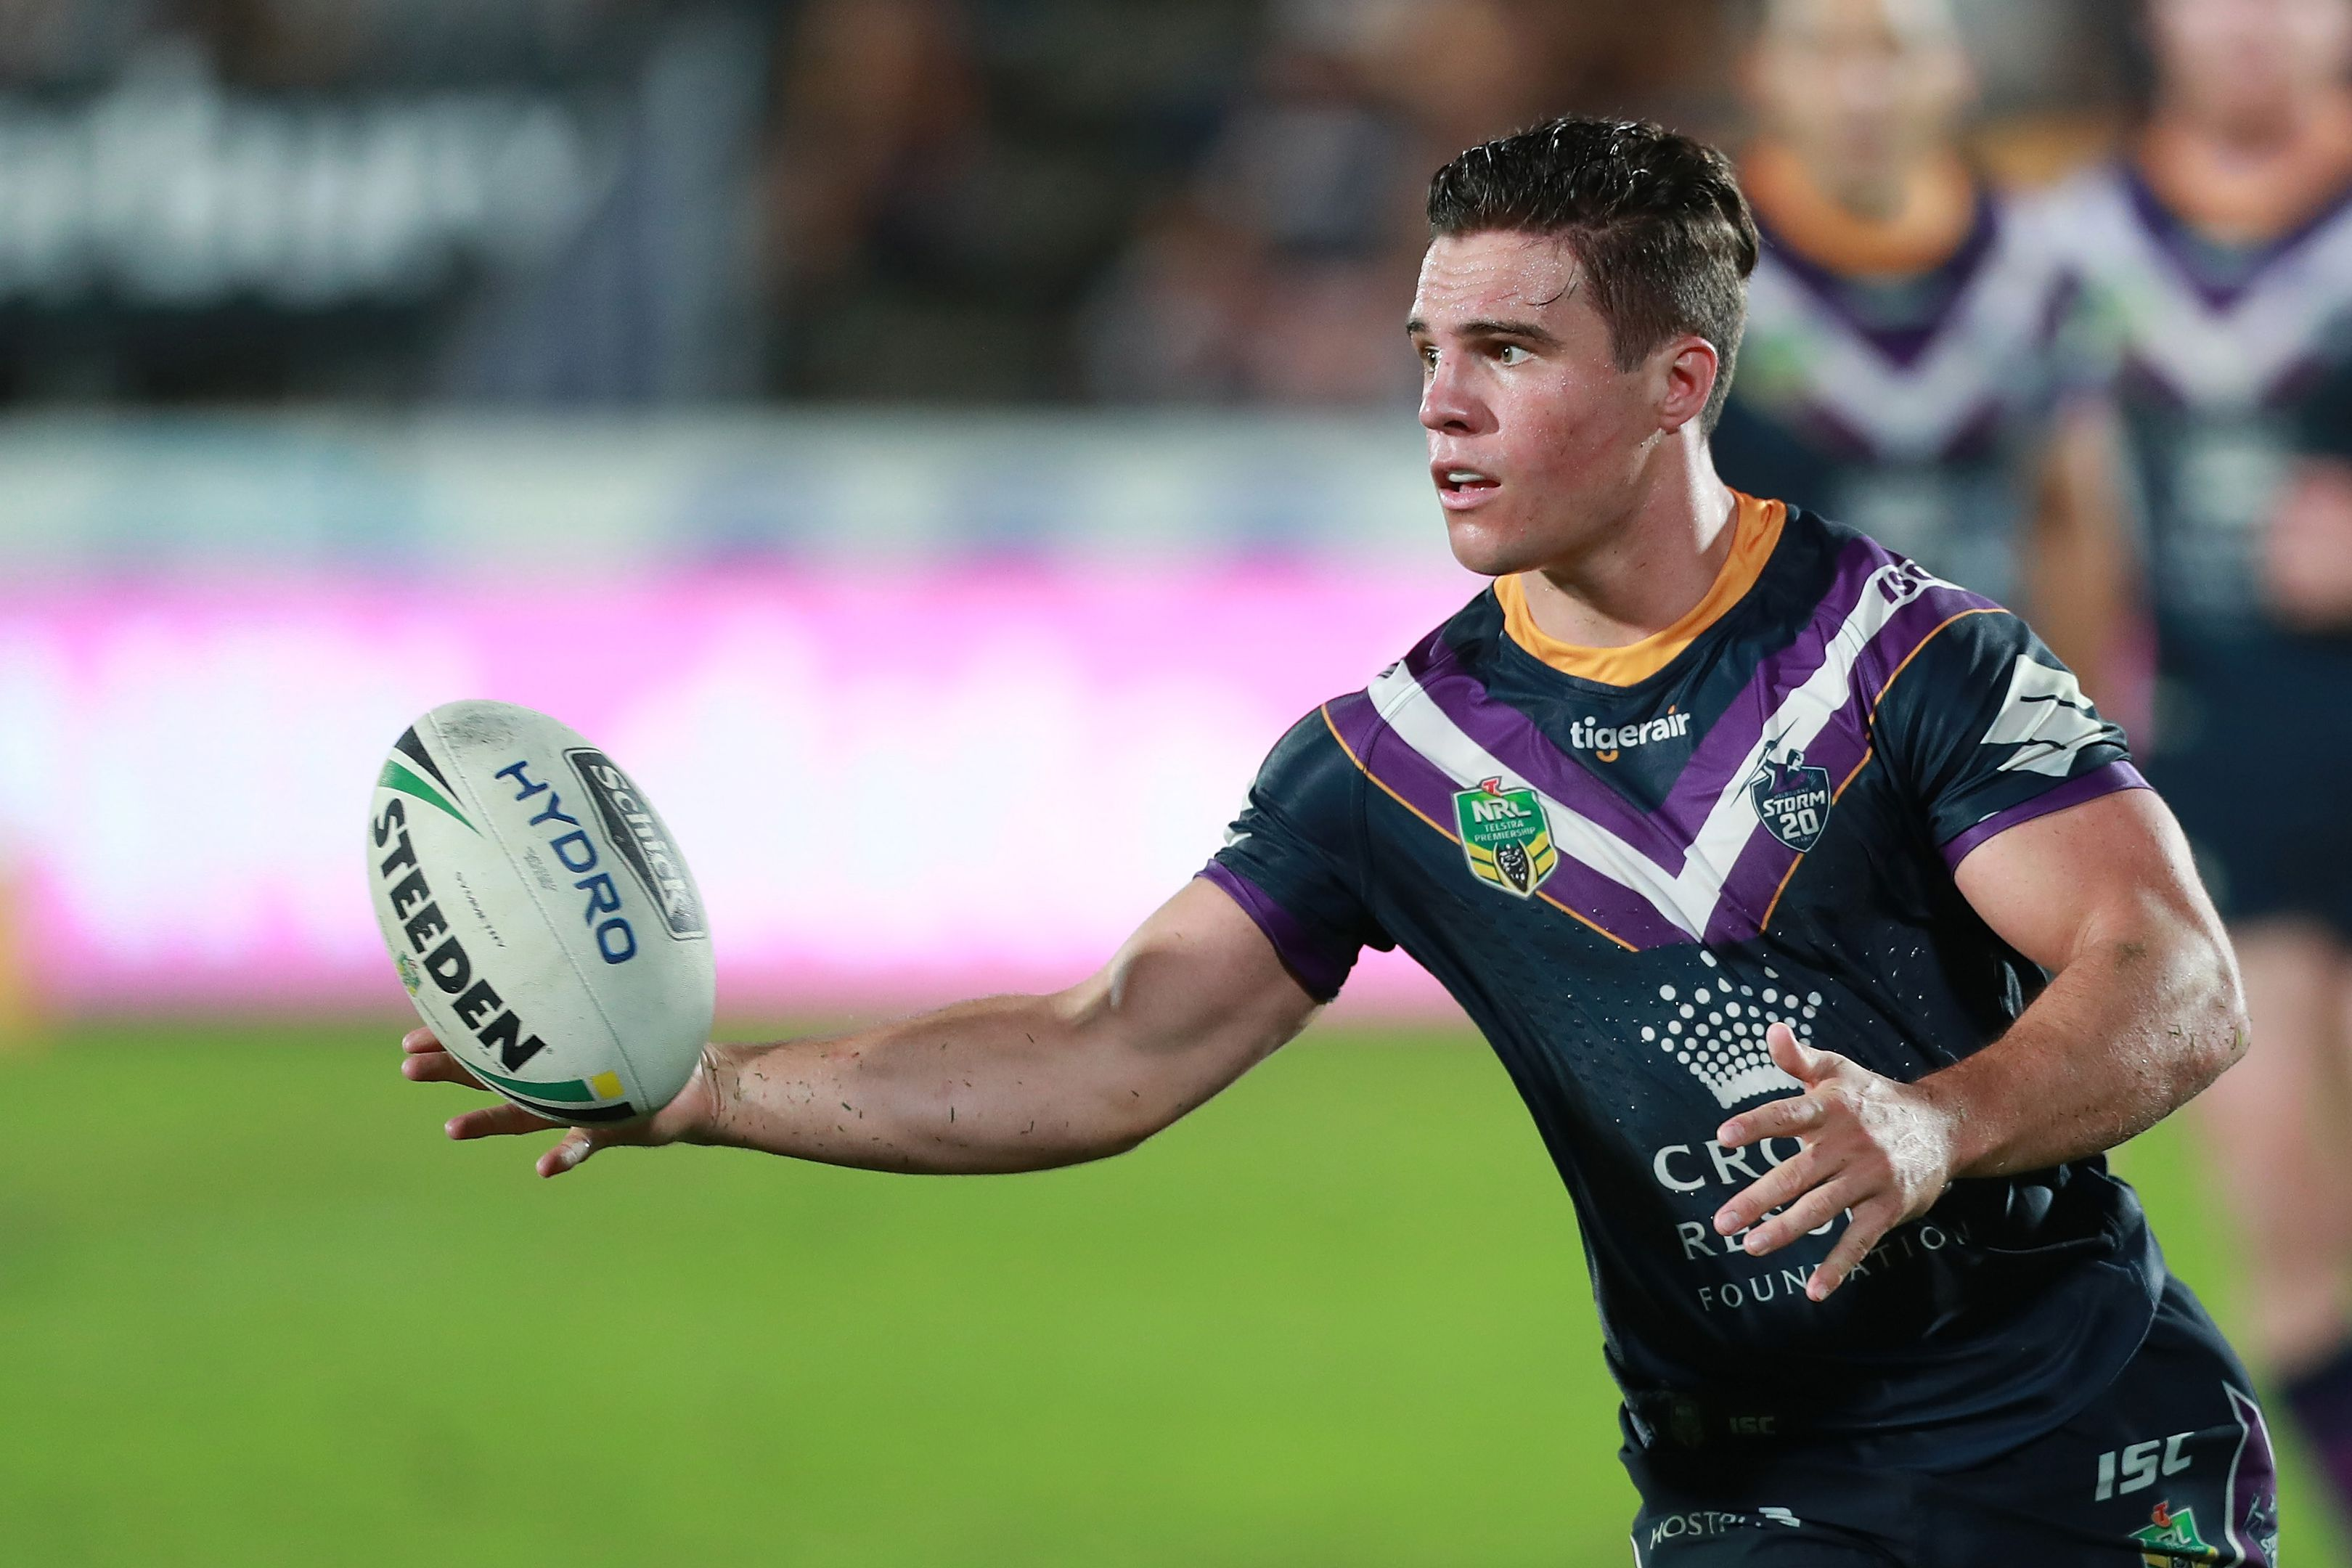 Croft receives the ball against the Tigers